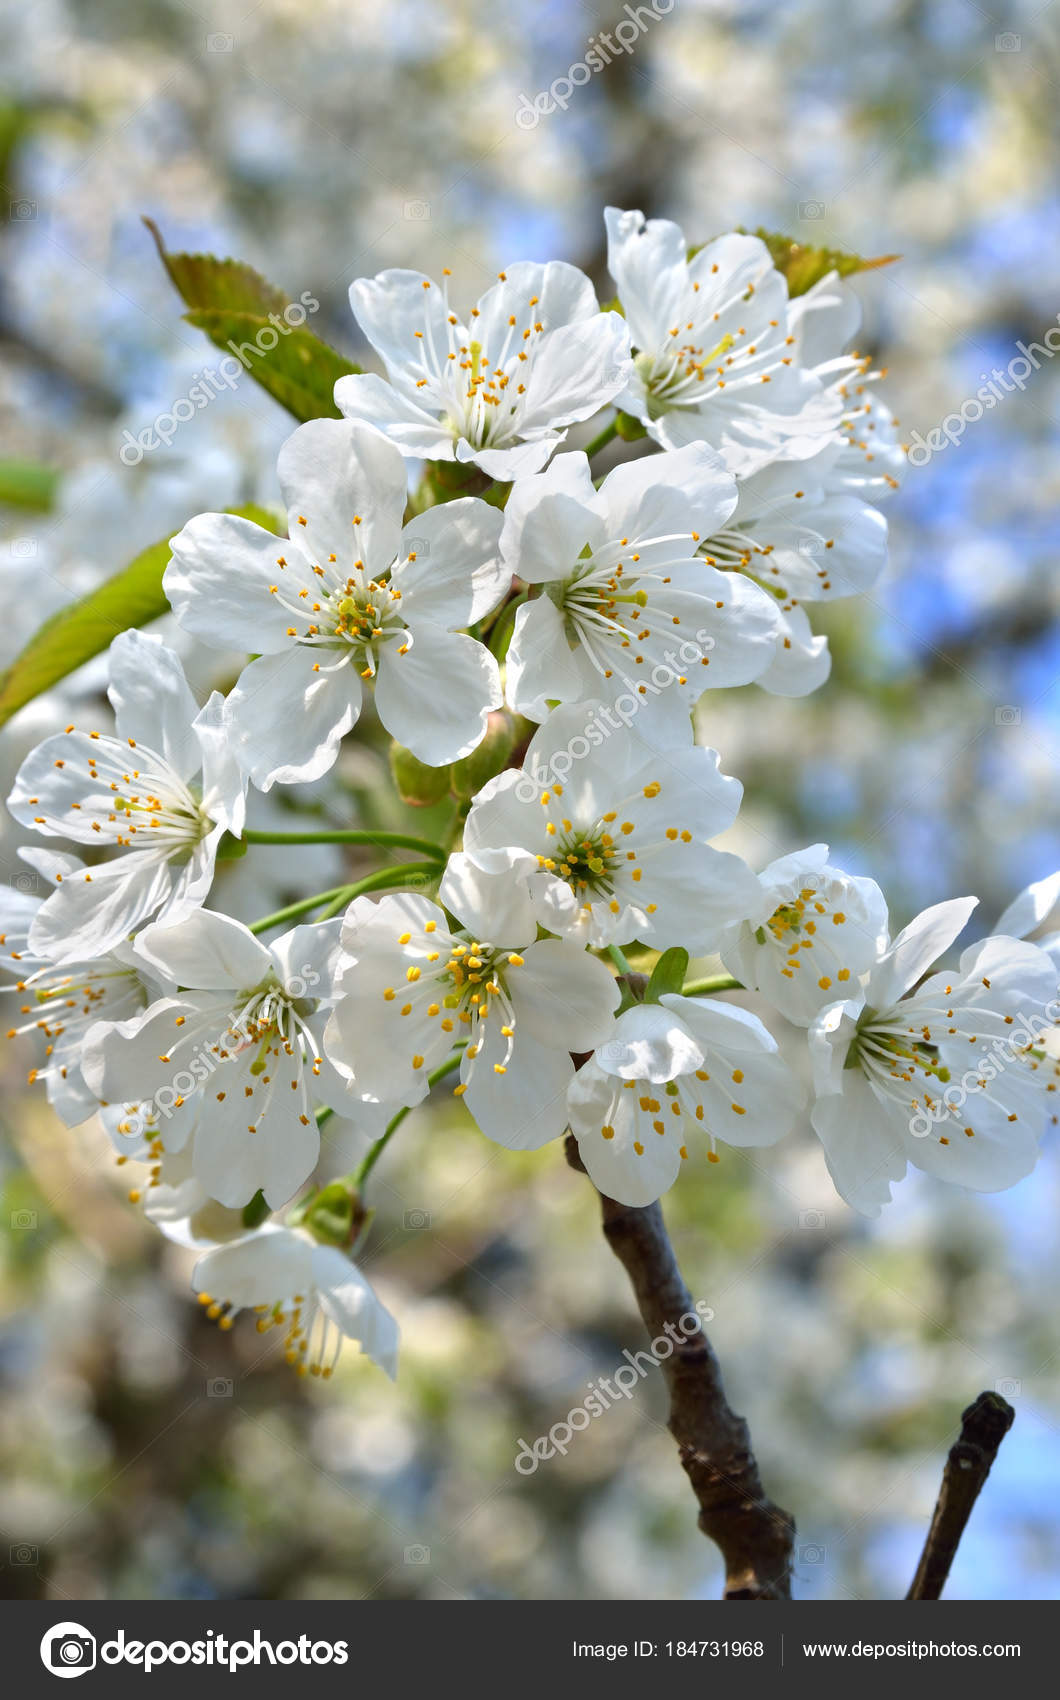 White flowers branches trees spring stock photo oleksandrum79 white flowers branches trees spring stock photo mightylinksfo Images